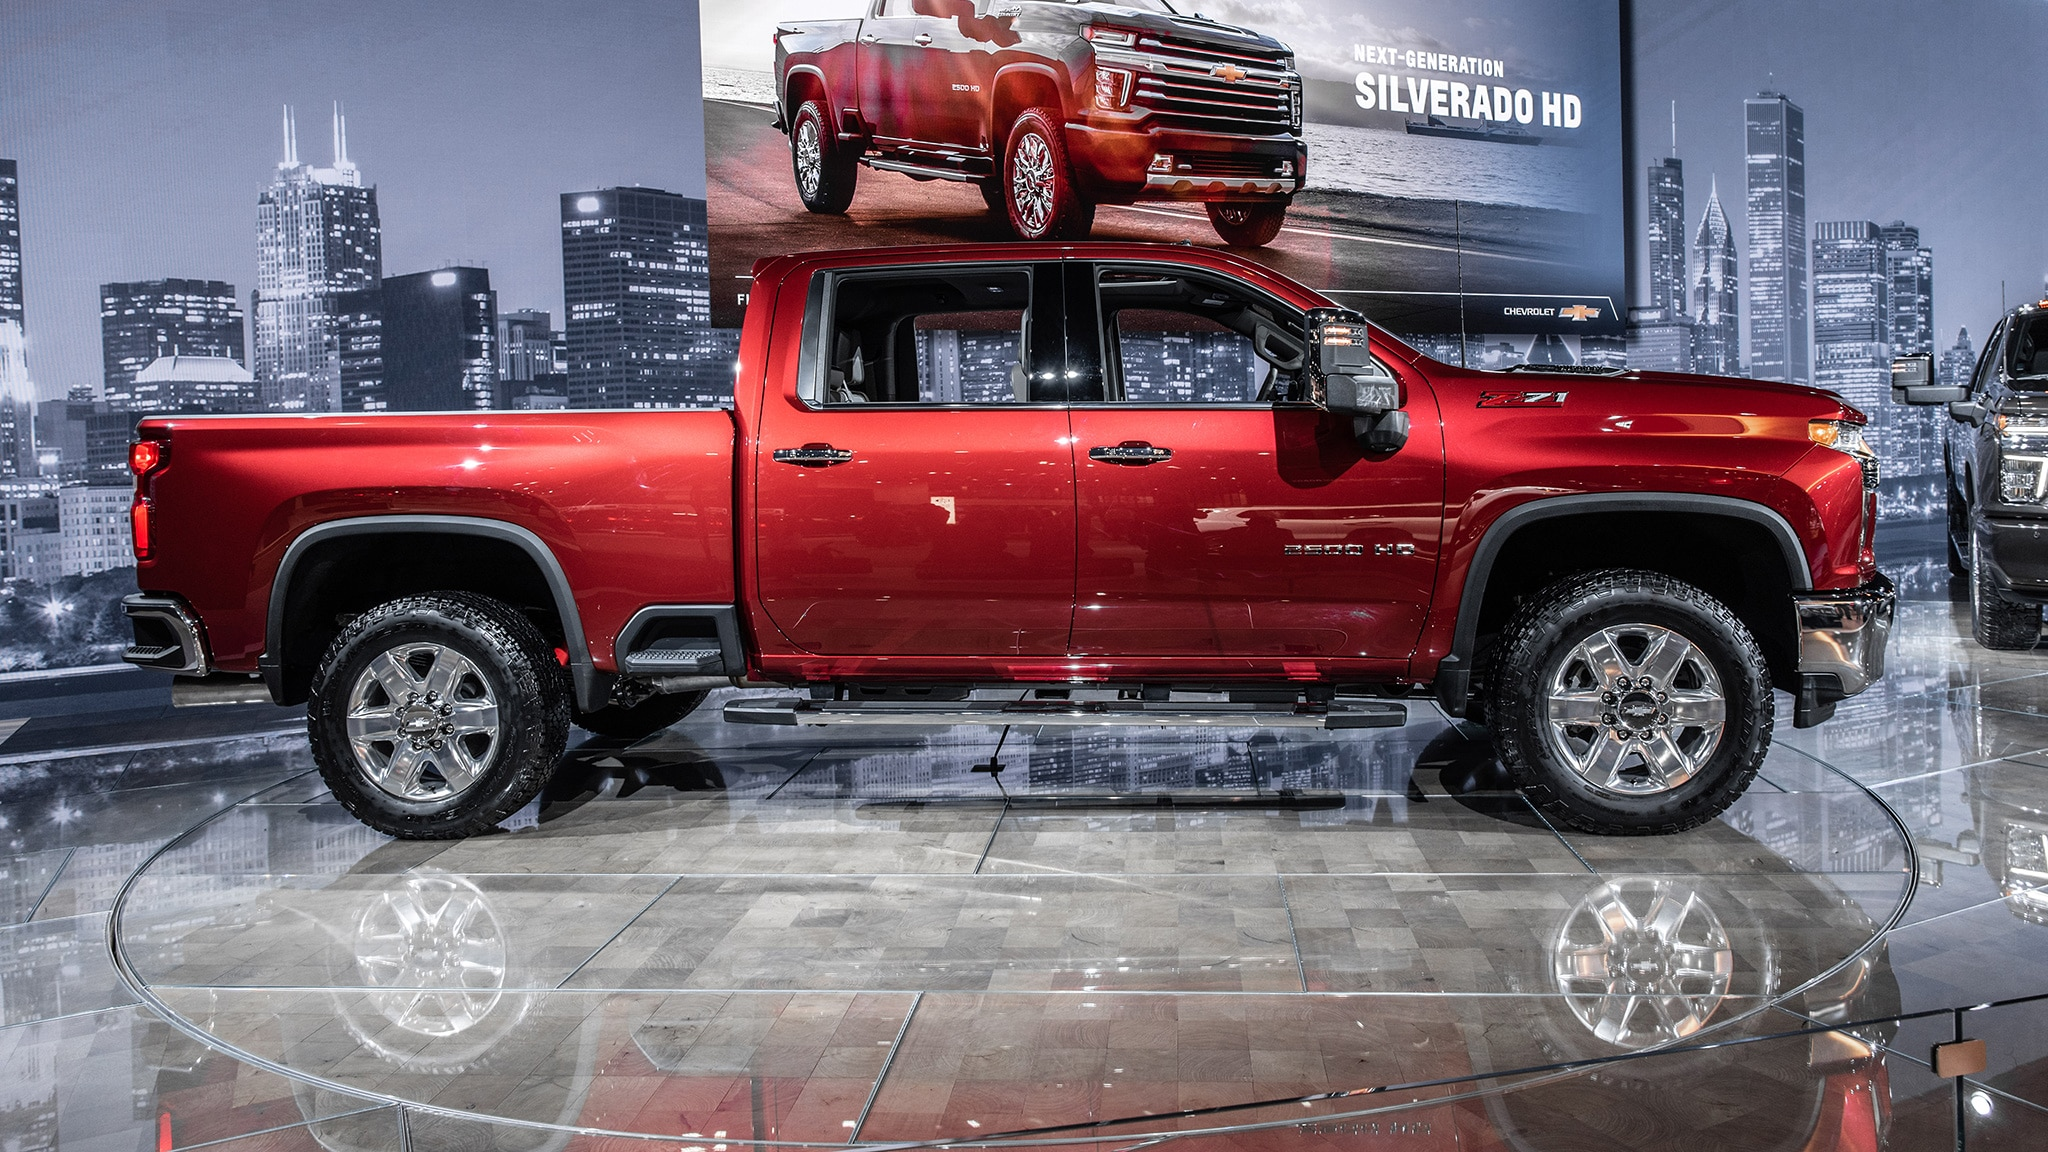 2020 chevrolet silverado hd debuts: big-time max towing